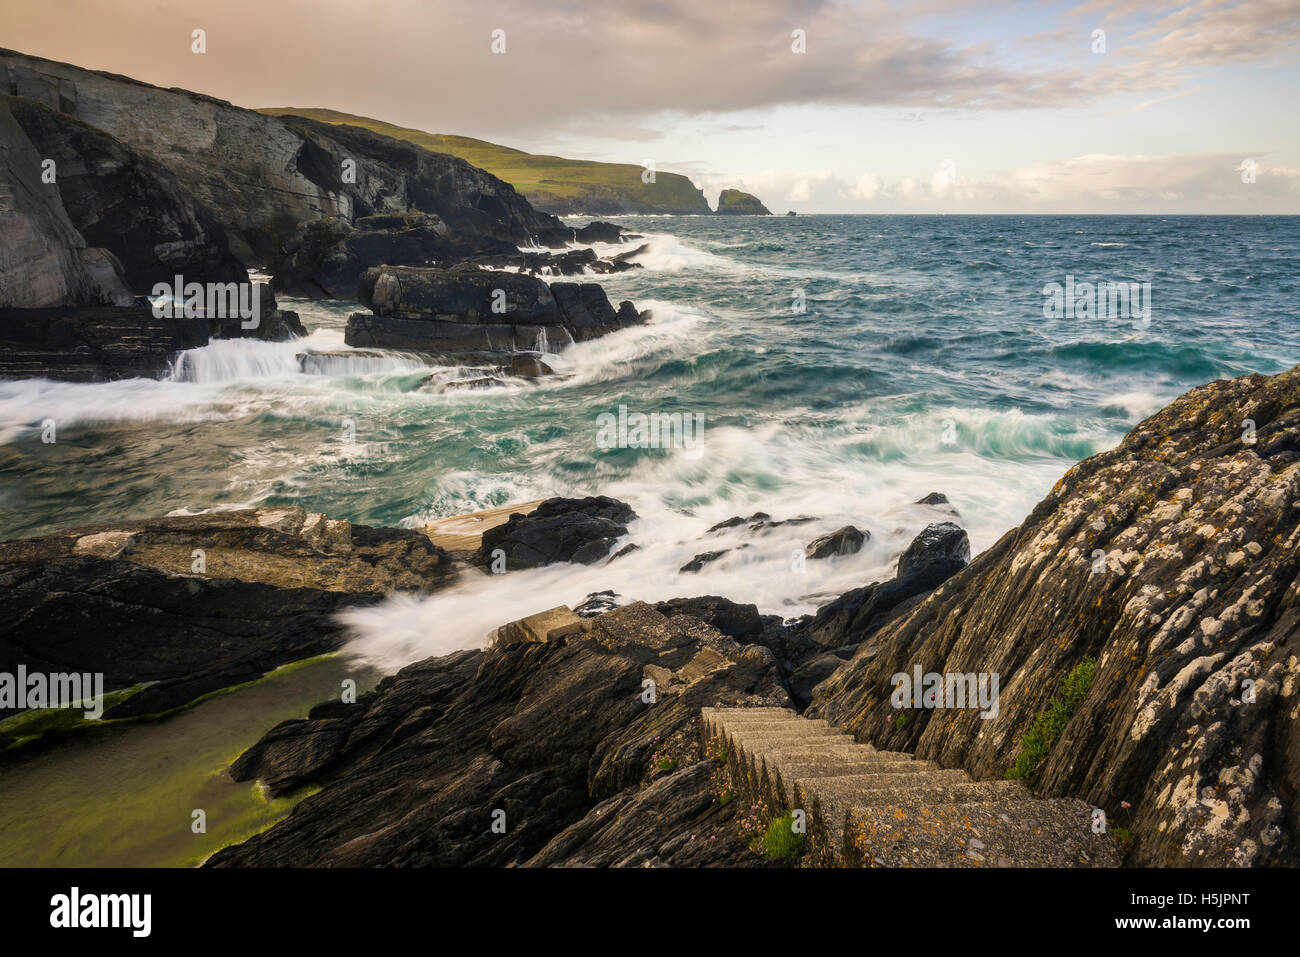 Sea view at West Cork, Ireland - Stock Image